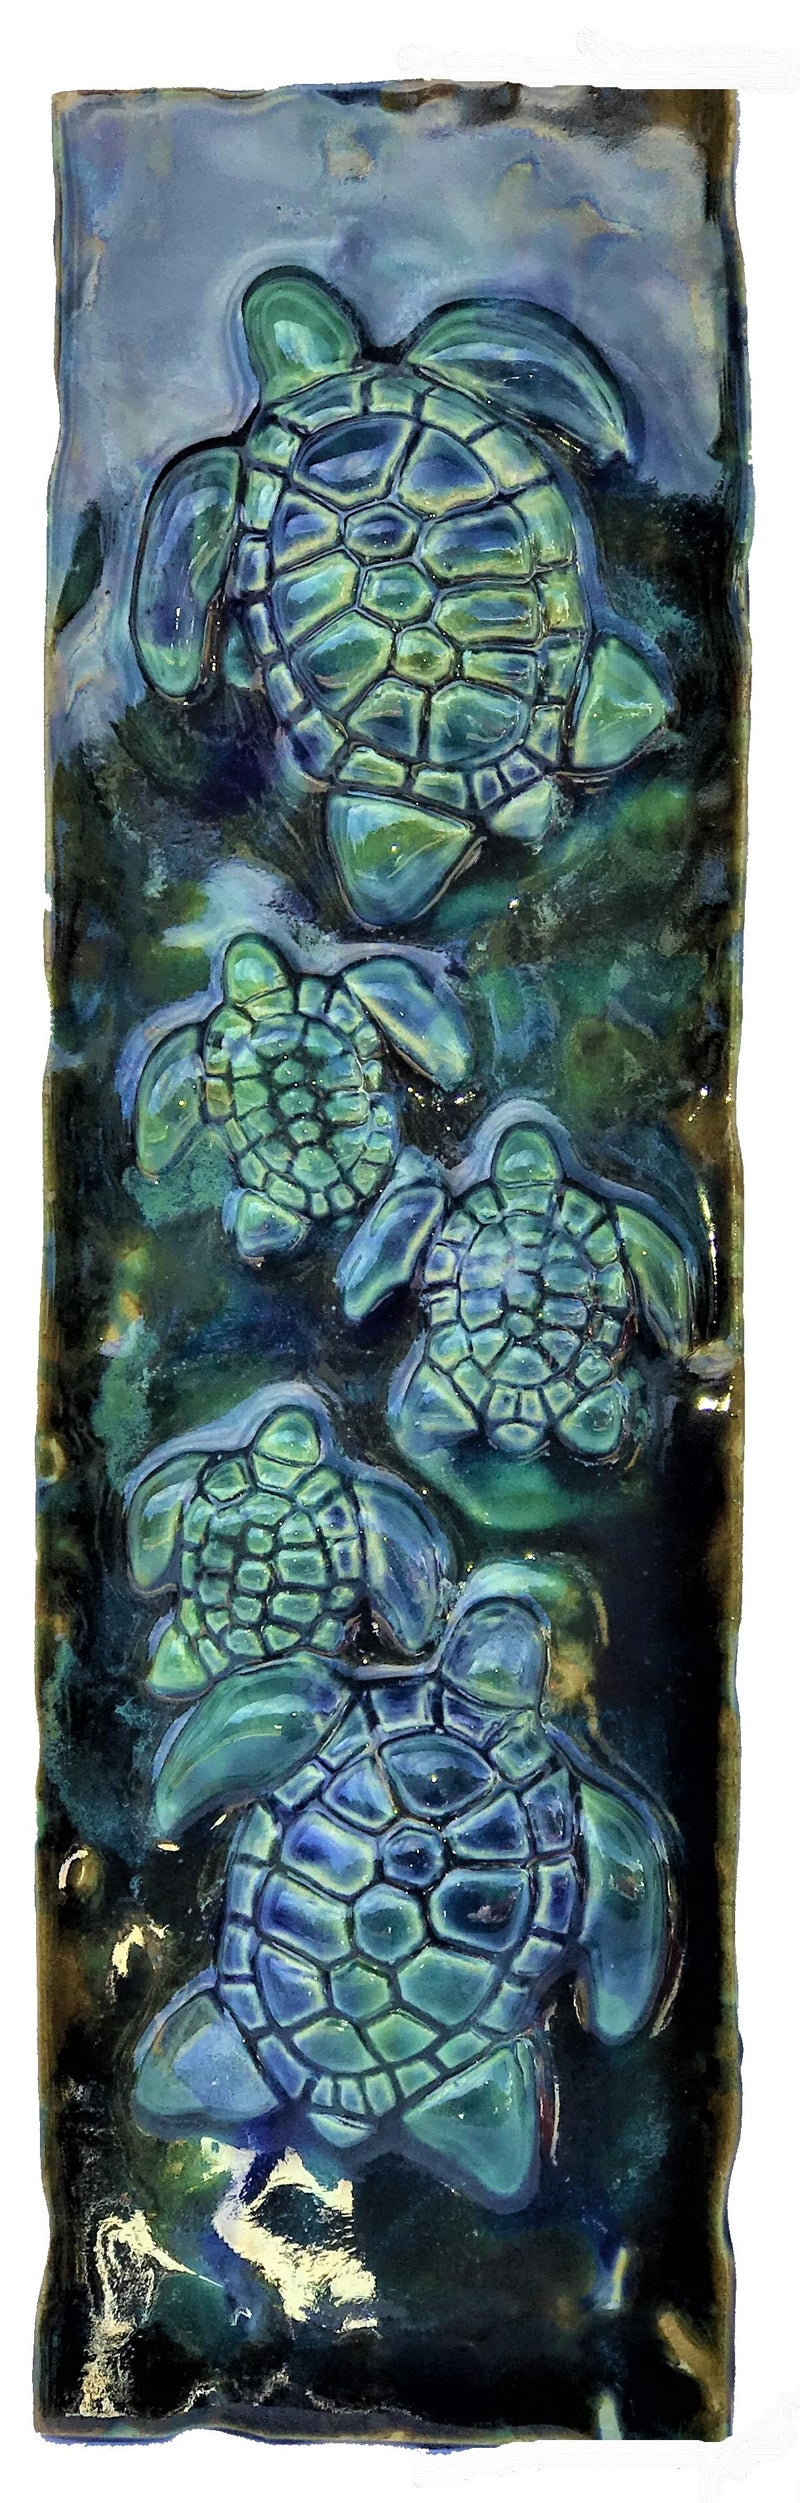 Tropical Beach Art, Decorative Wall Tiles, Sea Turtle Art, Beach Turtle Decor, Sea Life Art - Maui Ceramics